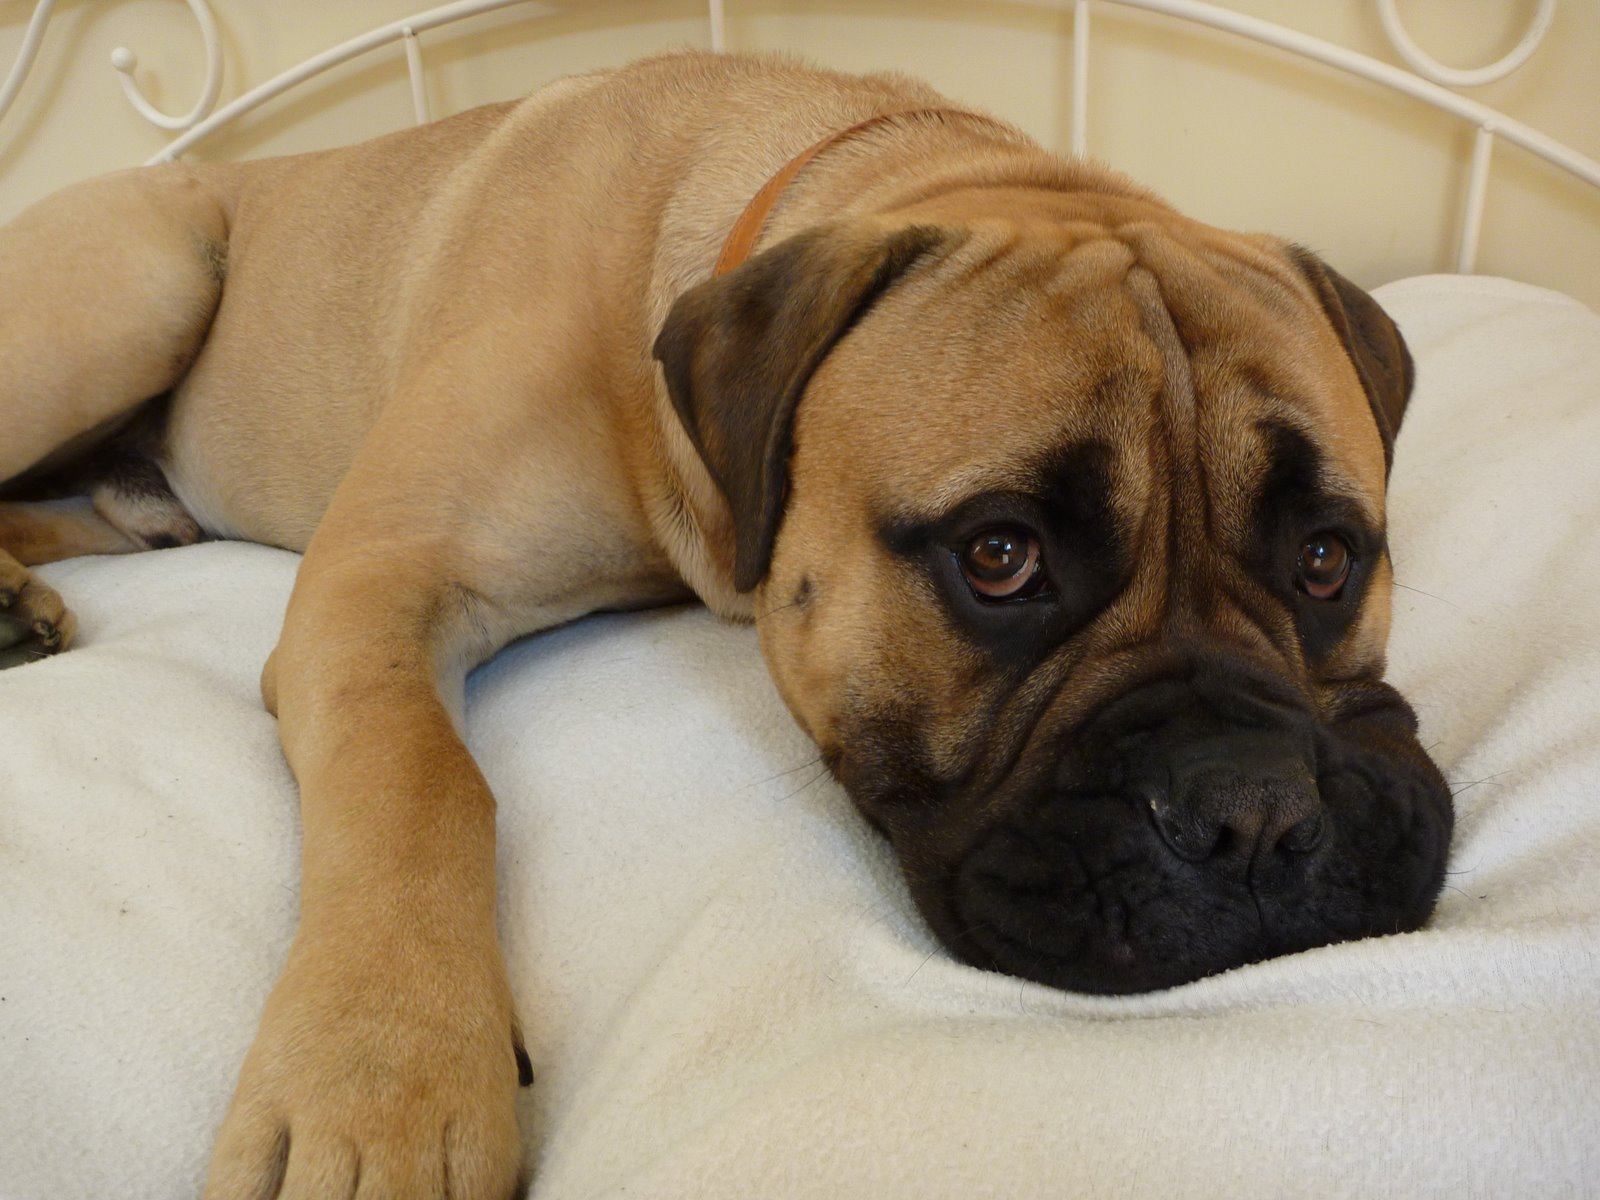 1000+ images about Bullmastiff on Pinterest | Giant dogs ...